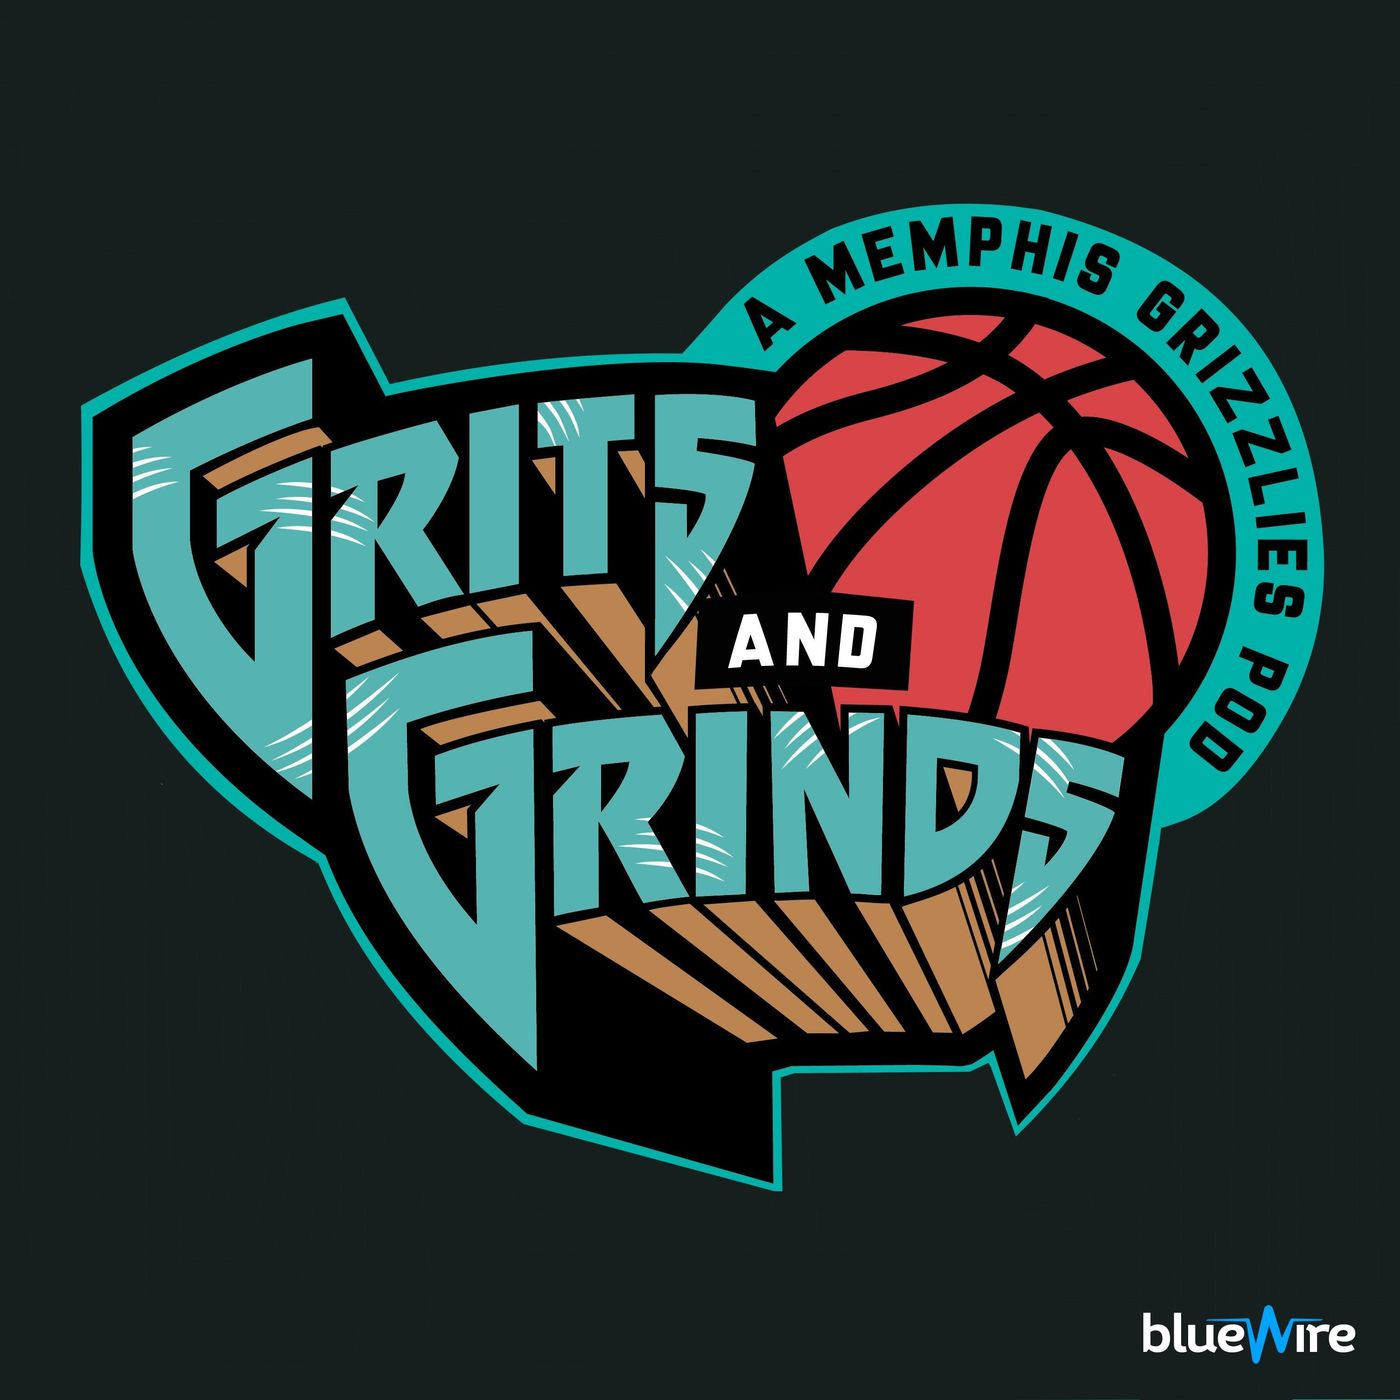 Chris Herrington on the NBA Draft and whether or not the Grizzlies stand pat